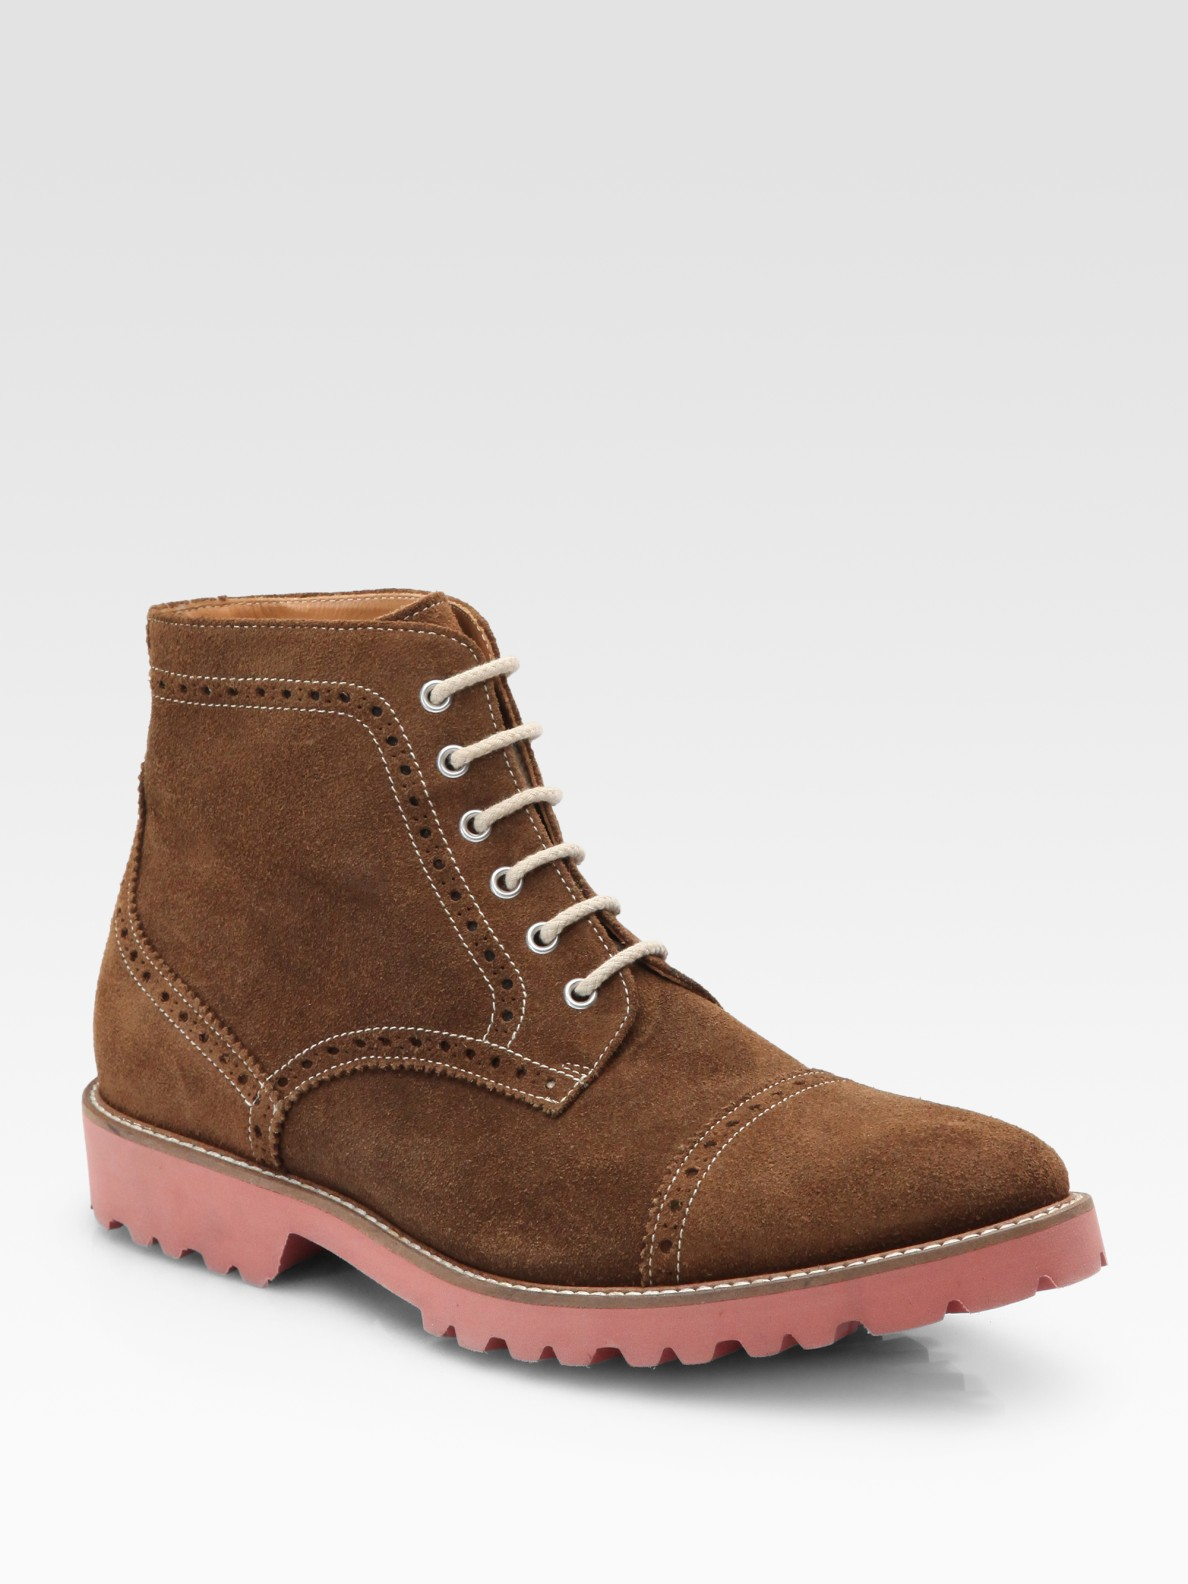 Mens Boots Rockport Comfortable Decorating Ideas Casual Men New